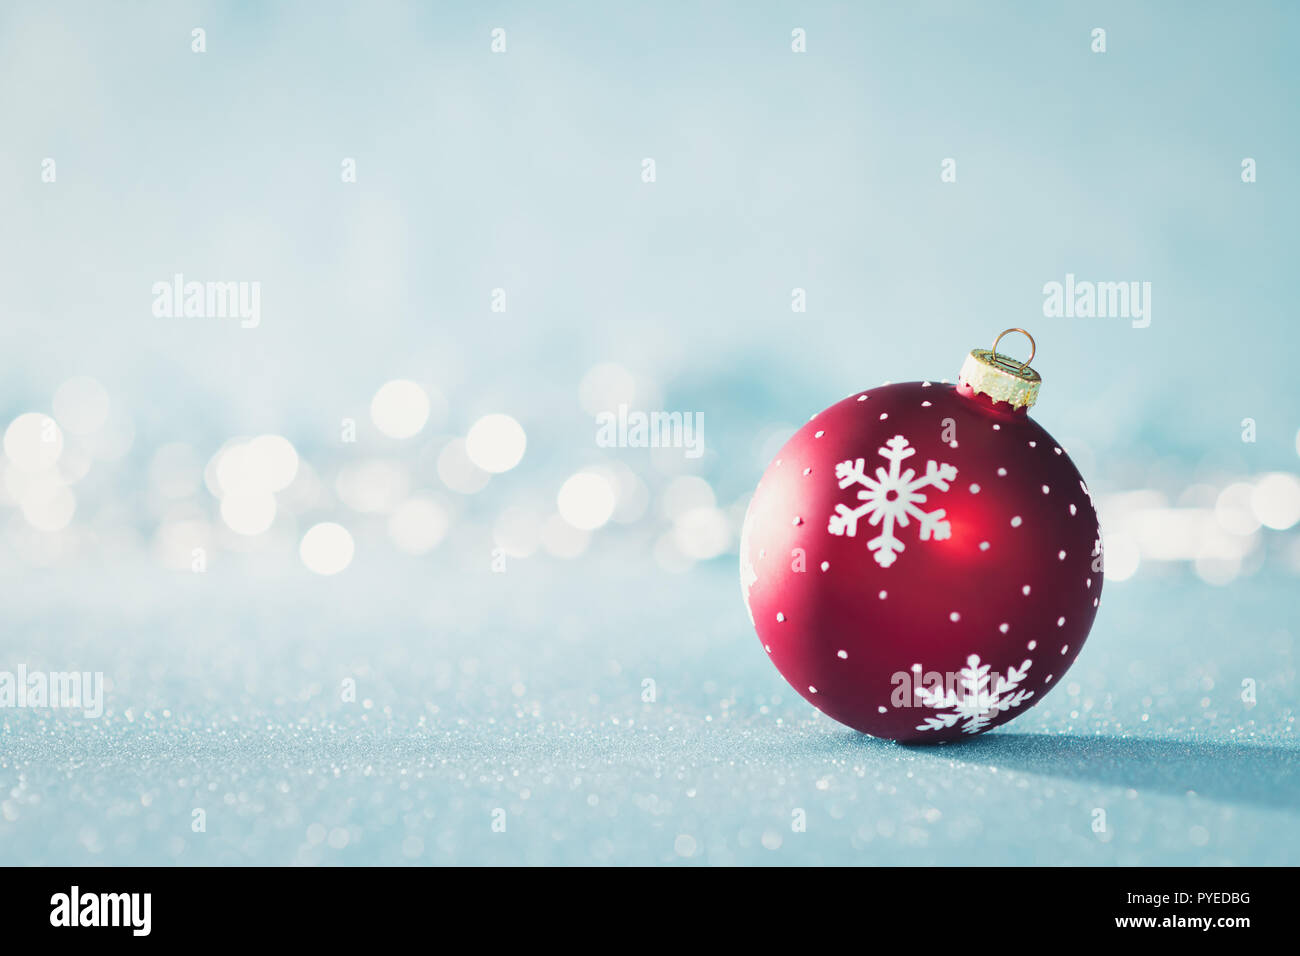 Christmas Background Pic.Bright Red Christmas Bauble In Winter Wonderland Blue